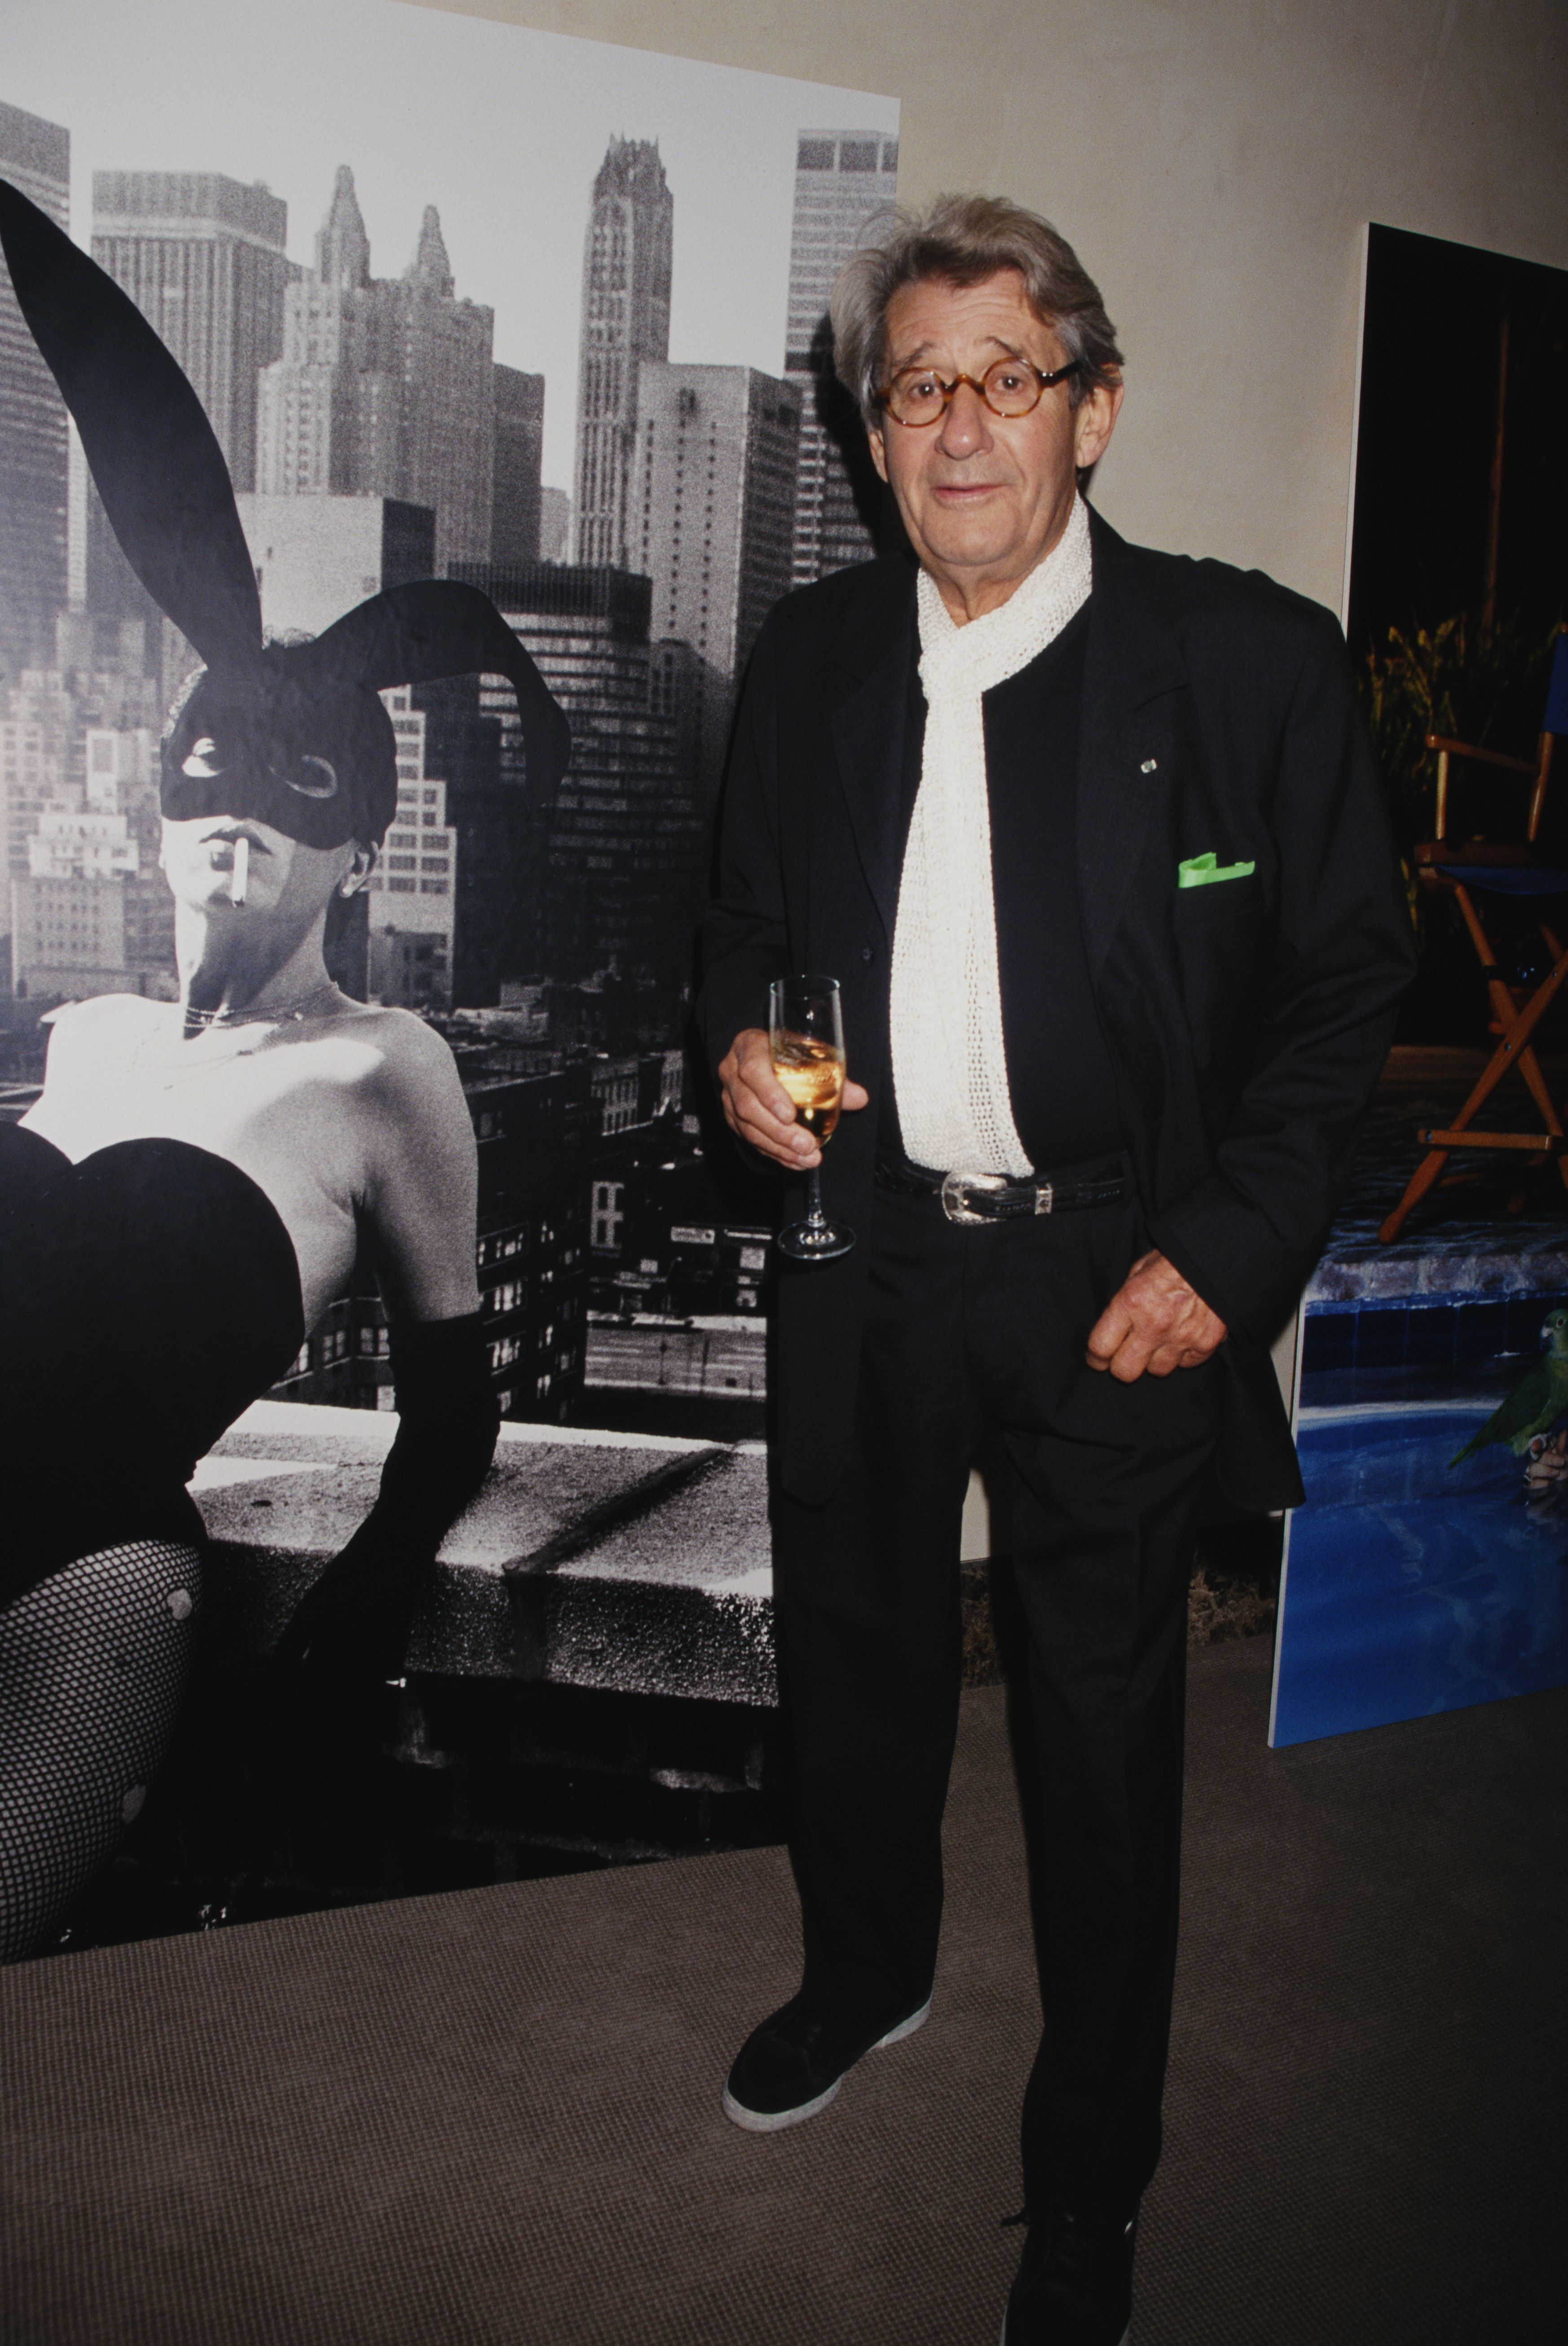 German-Australian photographer Helmut Newton (1920 - 2004) at Christie's in front of his photograph of Elsa Peretti, New York City, USA, 1998.